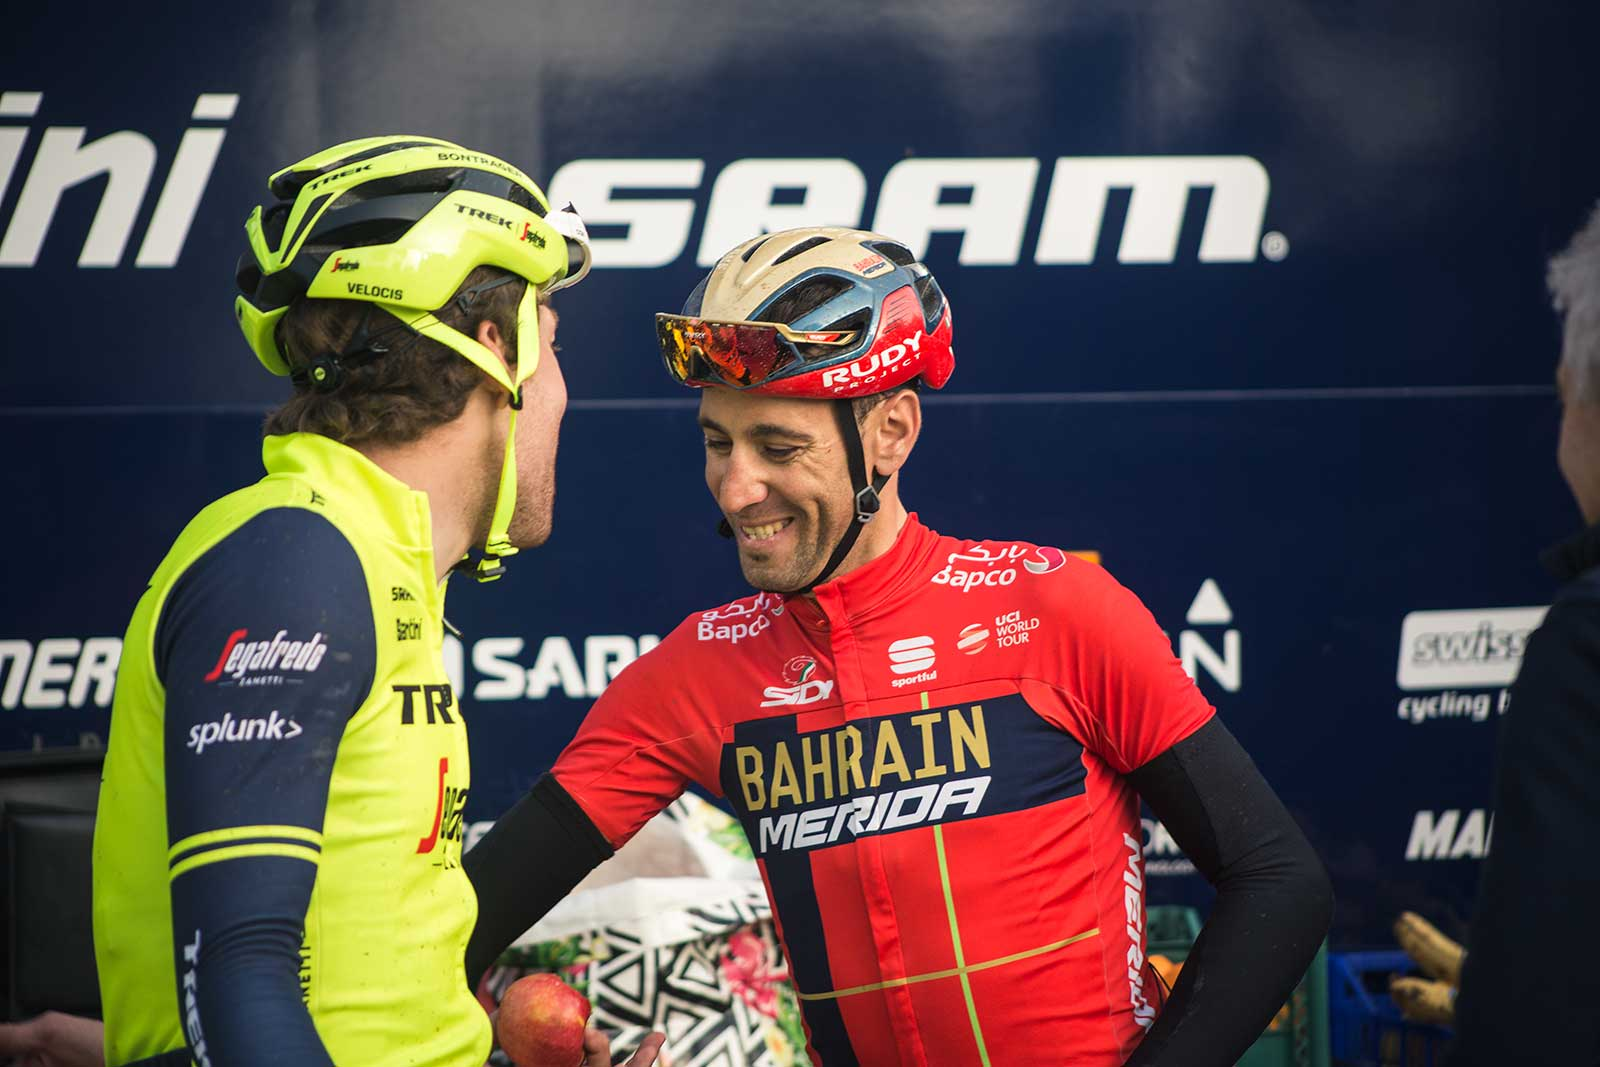 Kamp-cracking-a-joke-with-Nibali